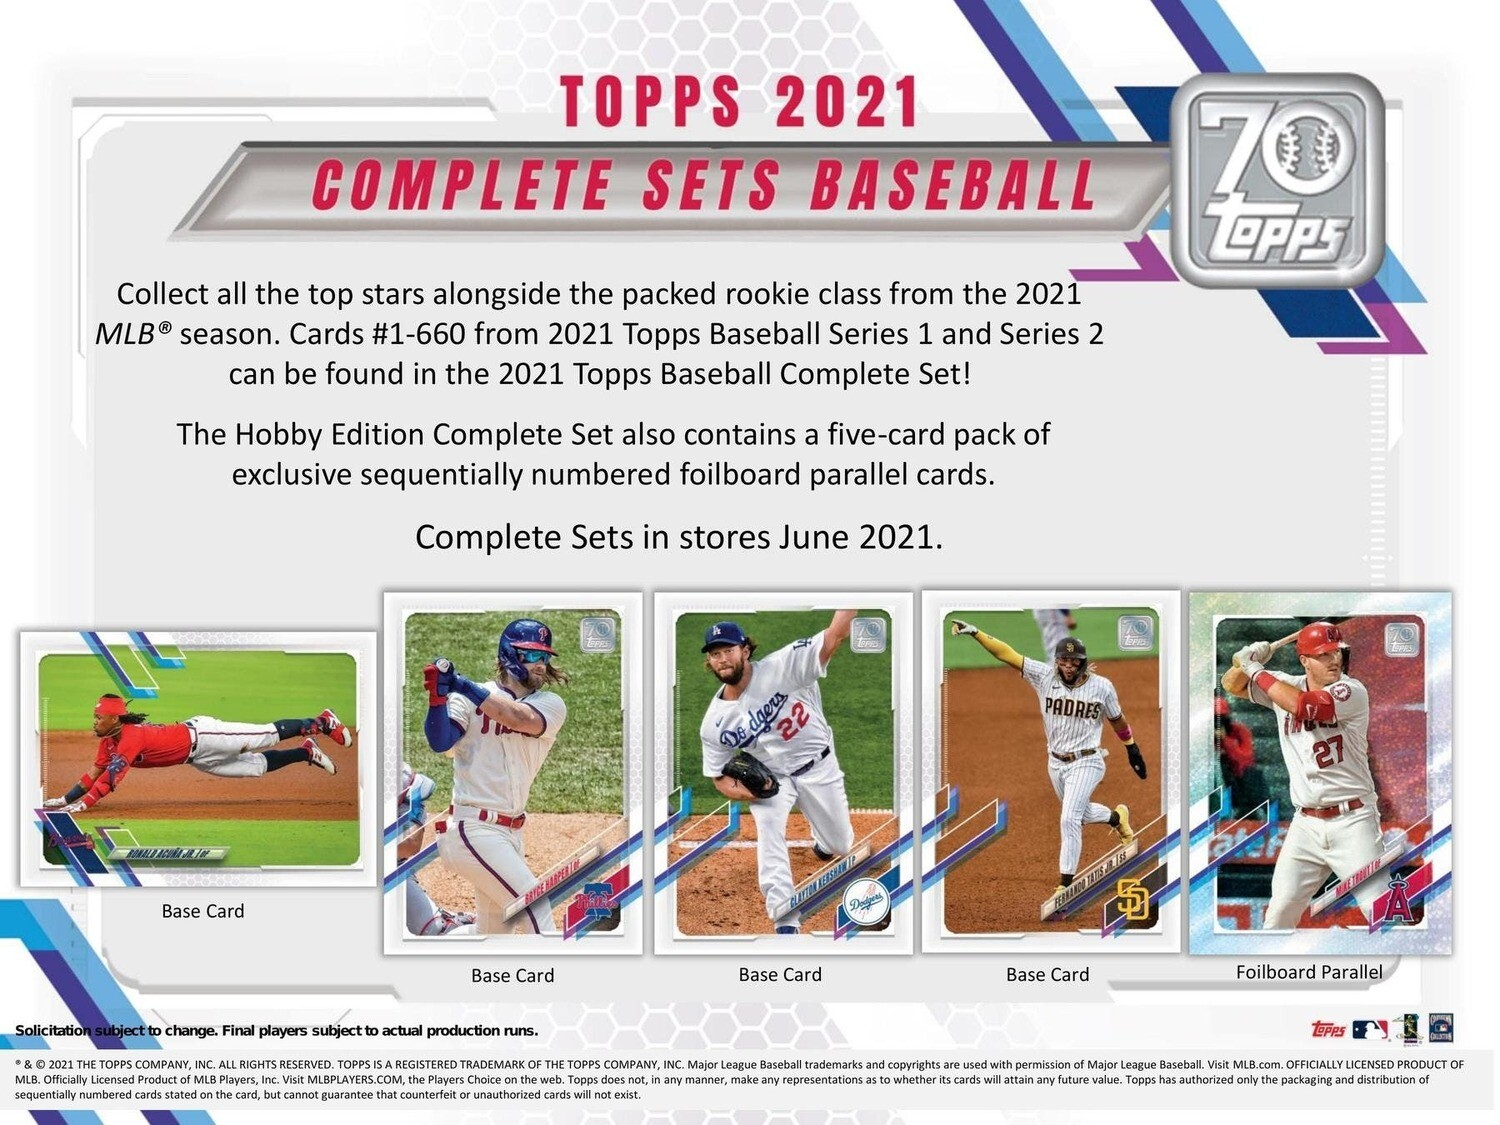 2021 Topps Complete Set